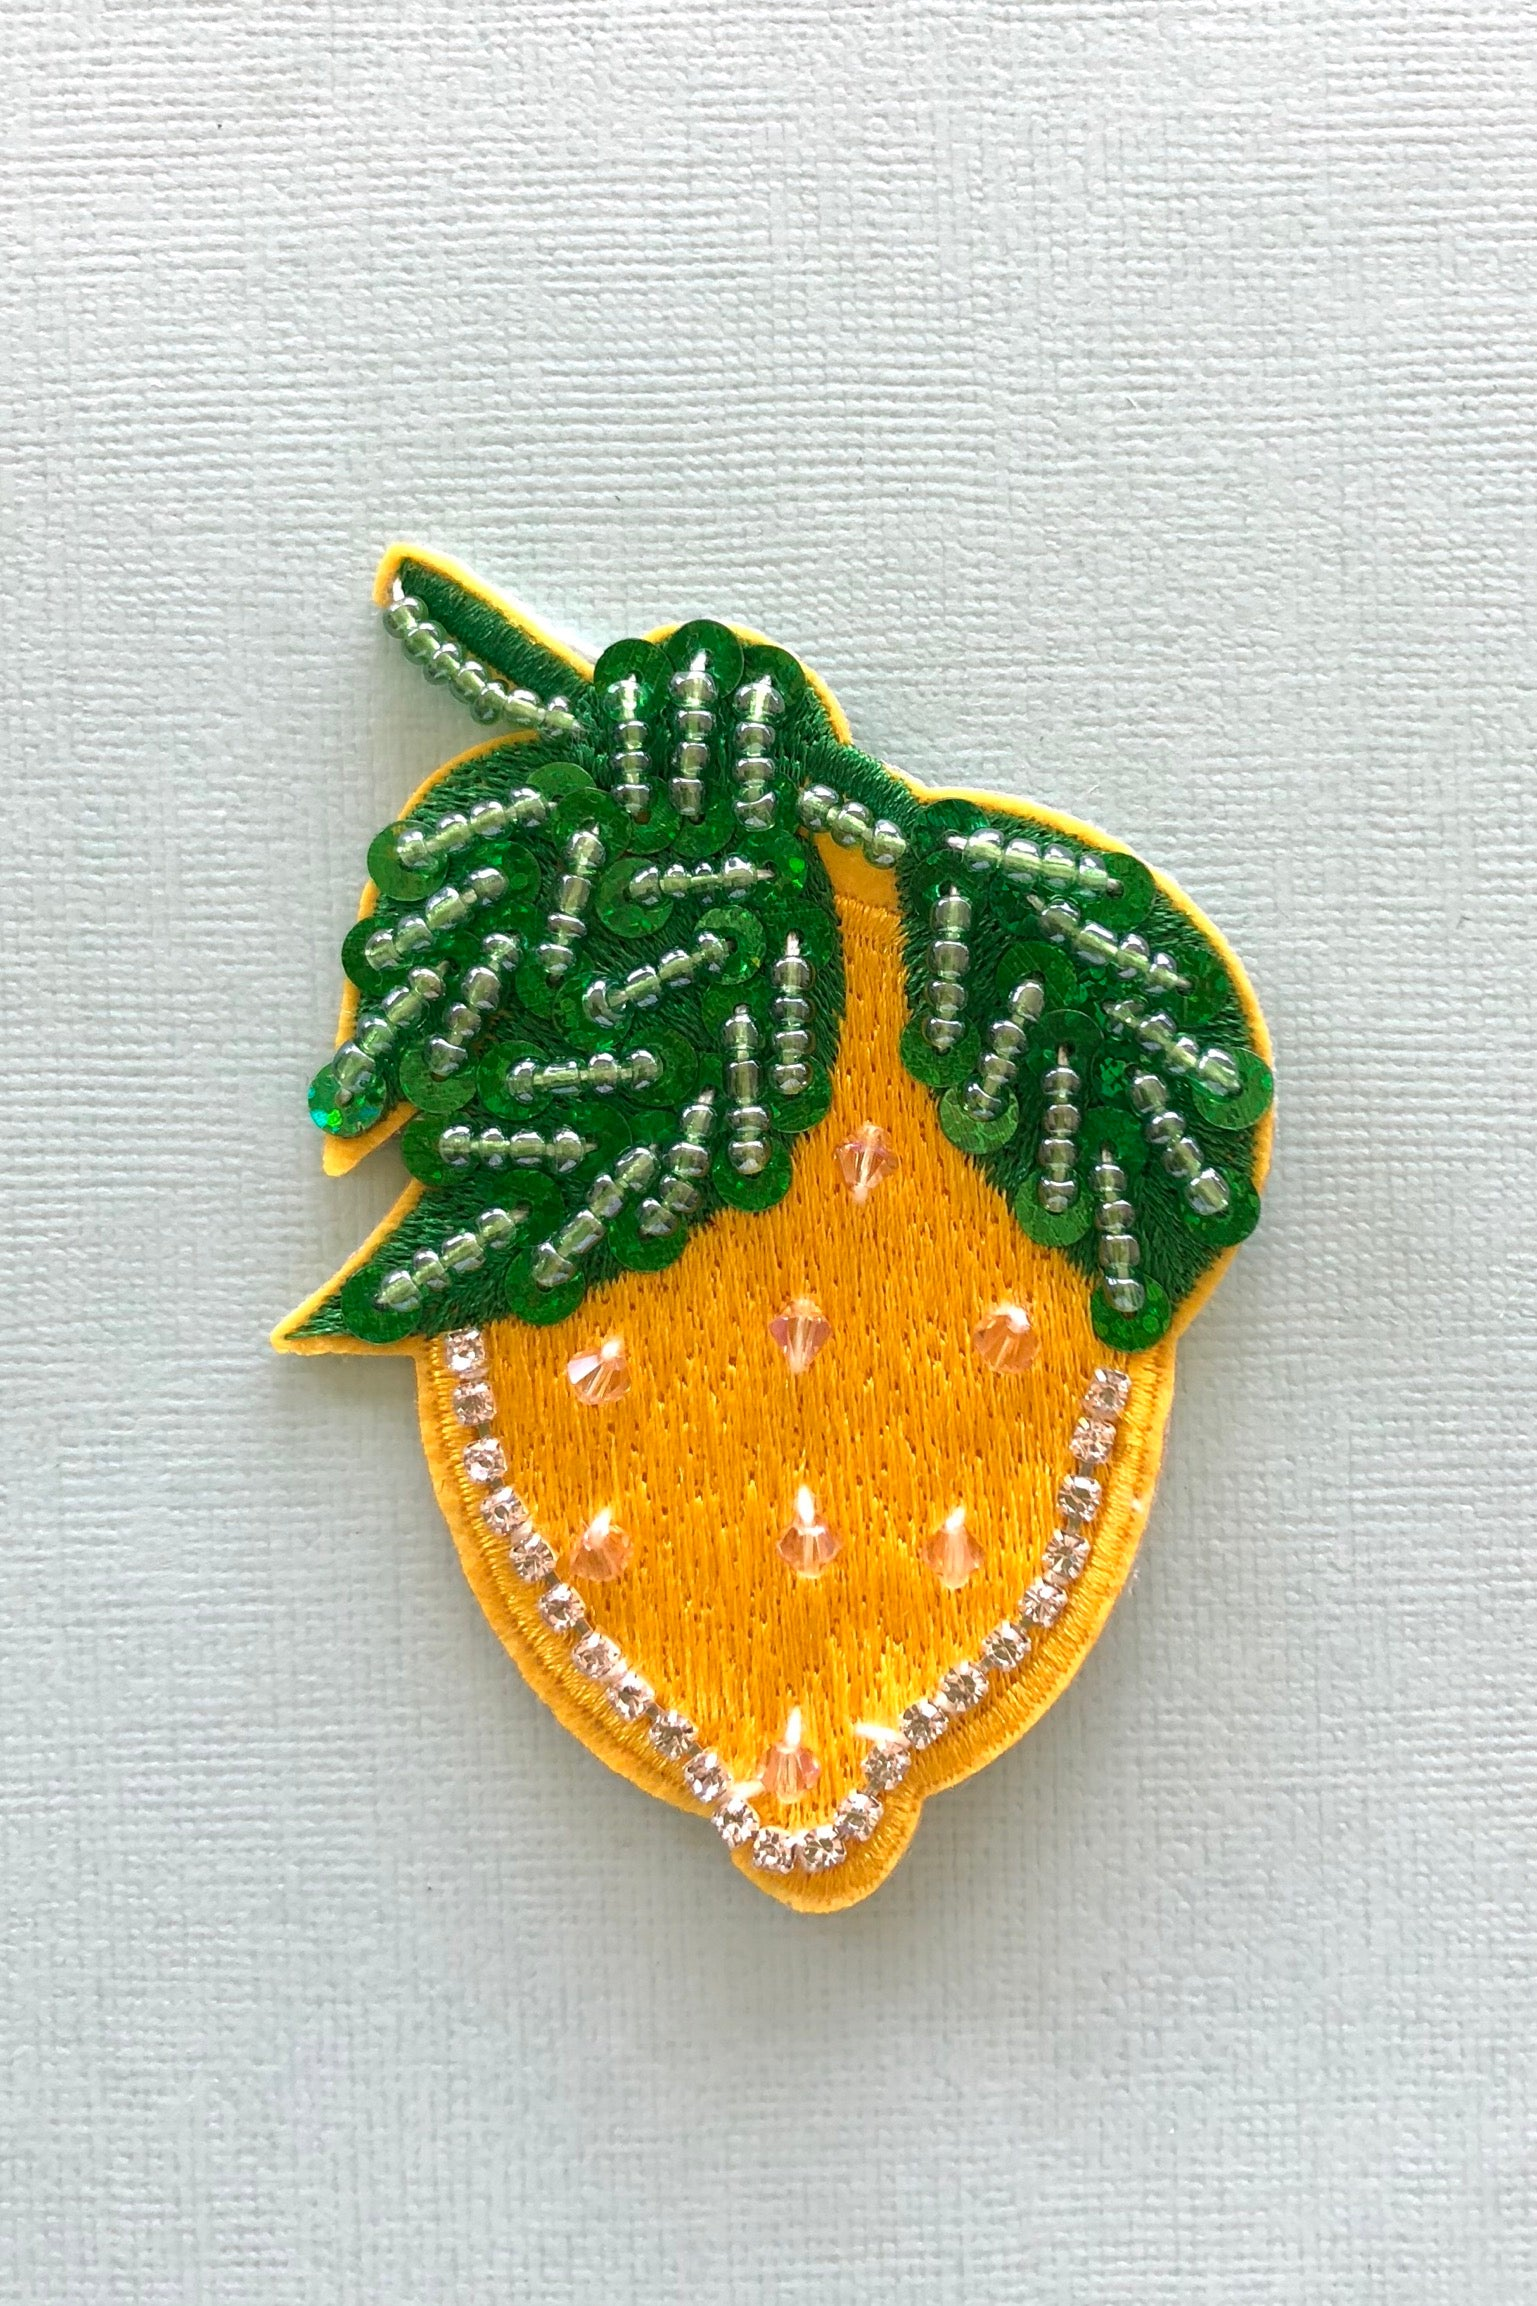 Iron on Motif Patches Fruity, Cute patch for denim decoration.